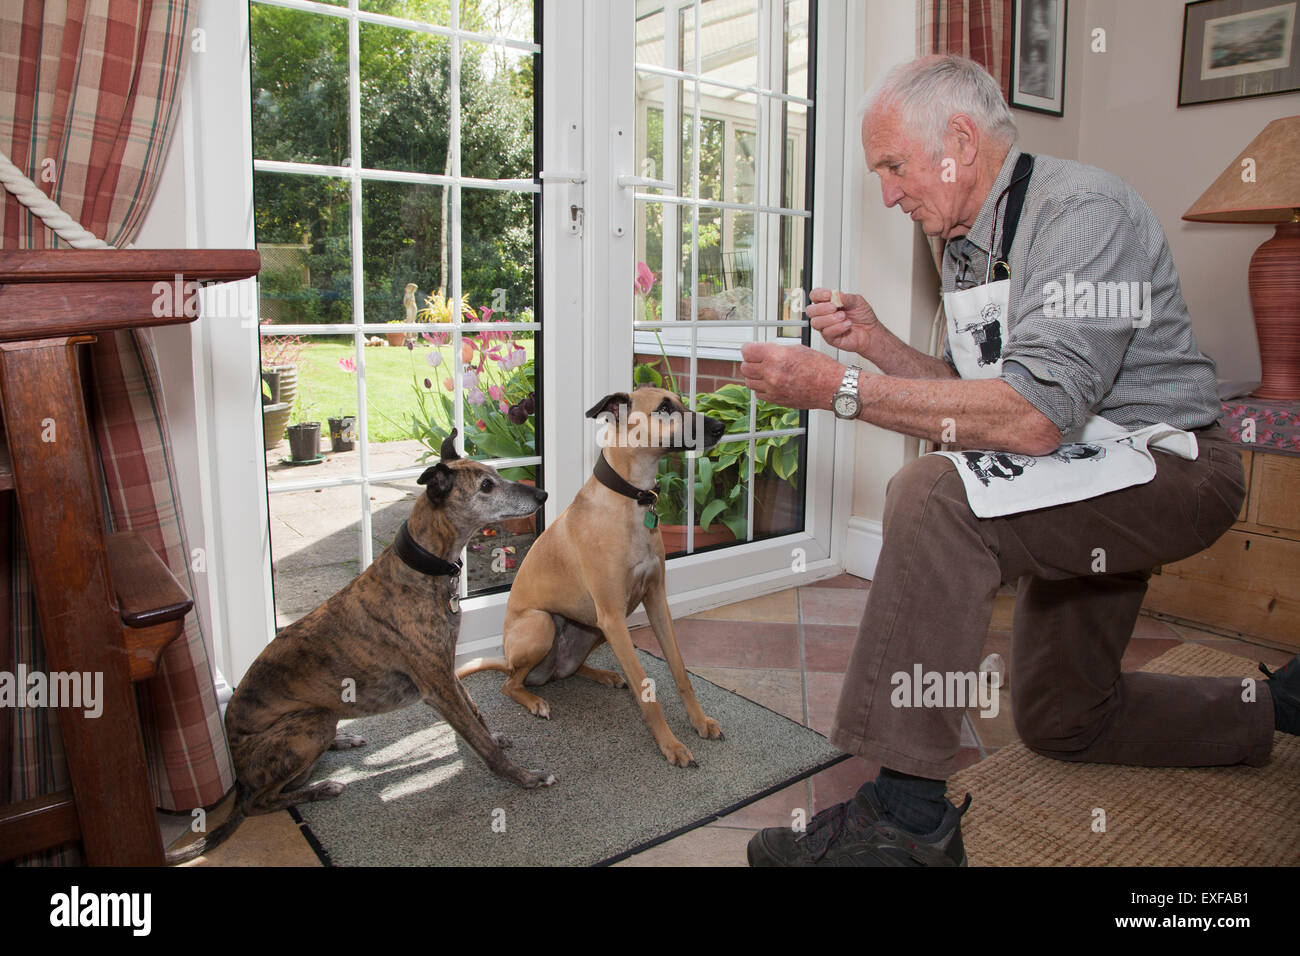 Senior man teaching pet dogs to sit and wait for treats - Stock Image